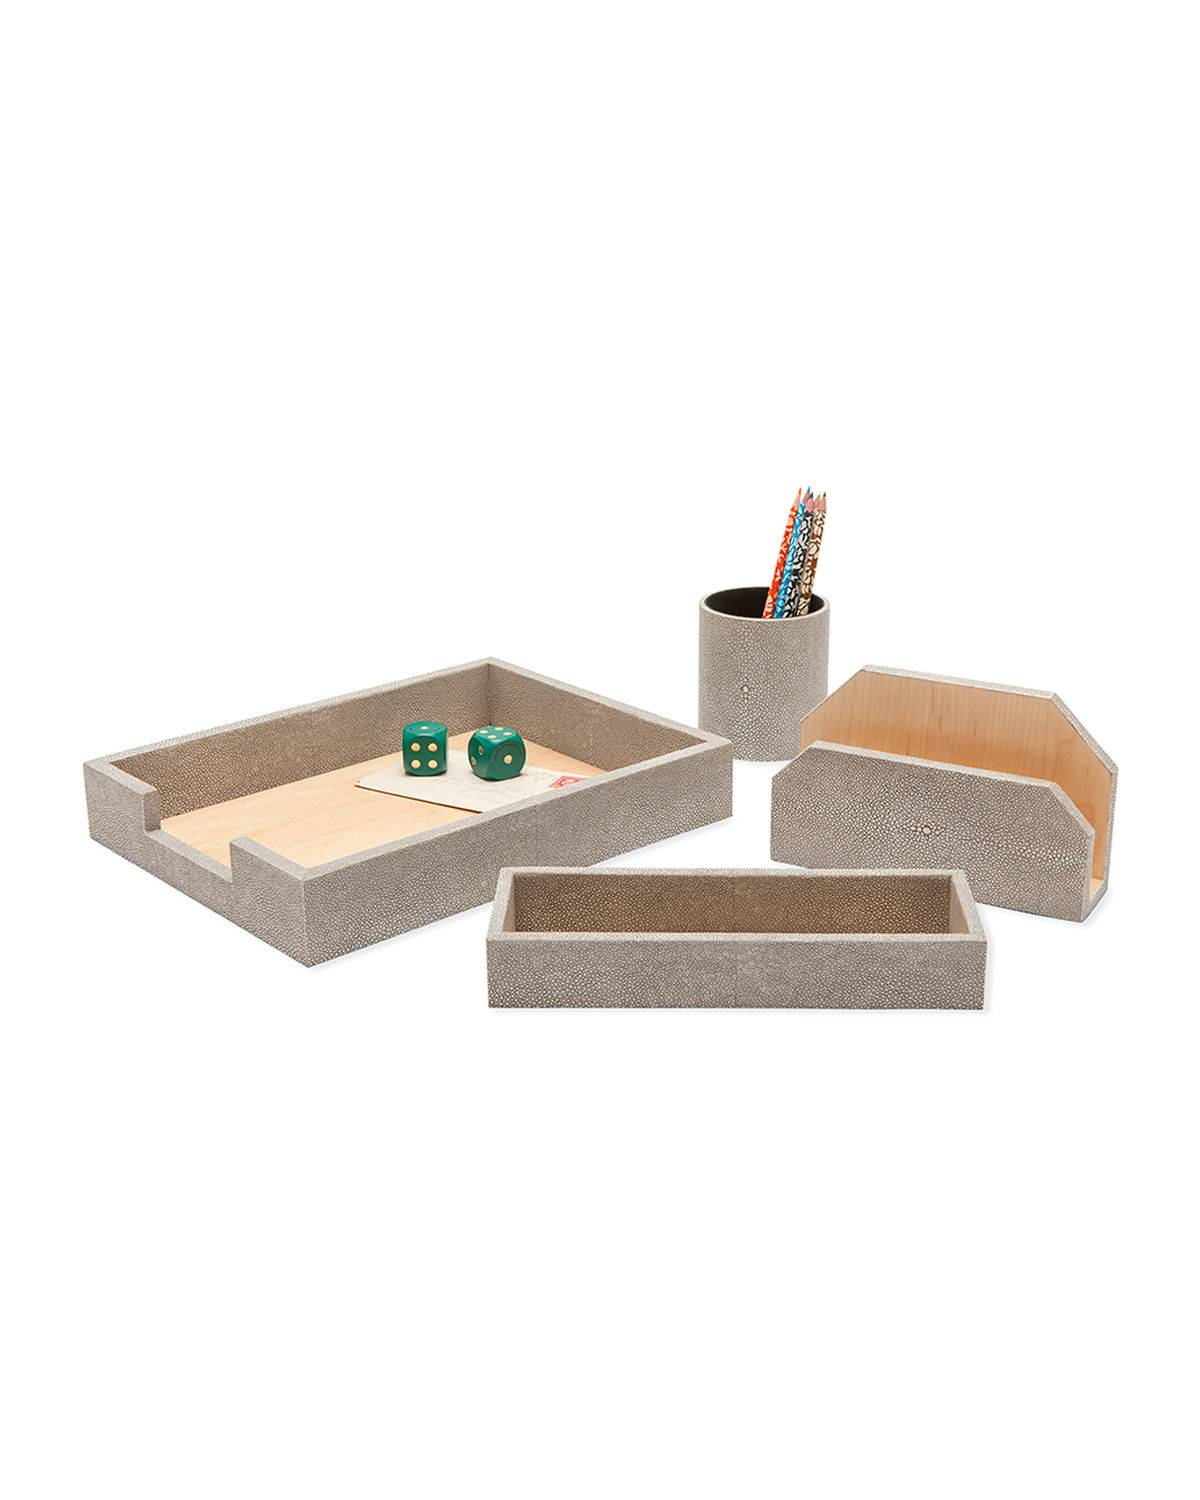 Pigeon and Poodle Crosby Faux-Shagreen Desk Organizer Accessory Set